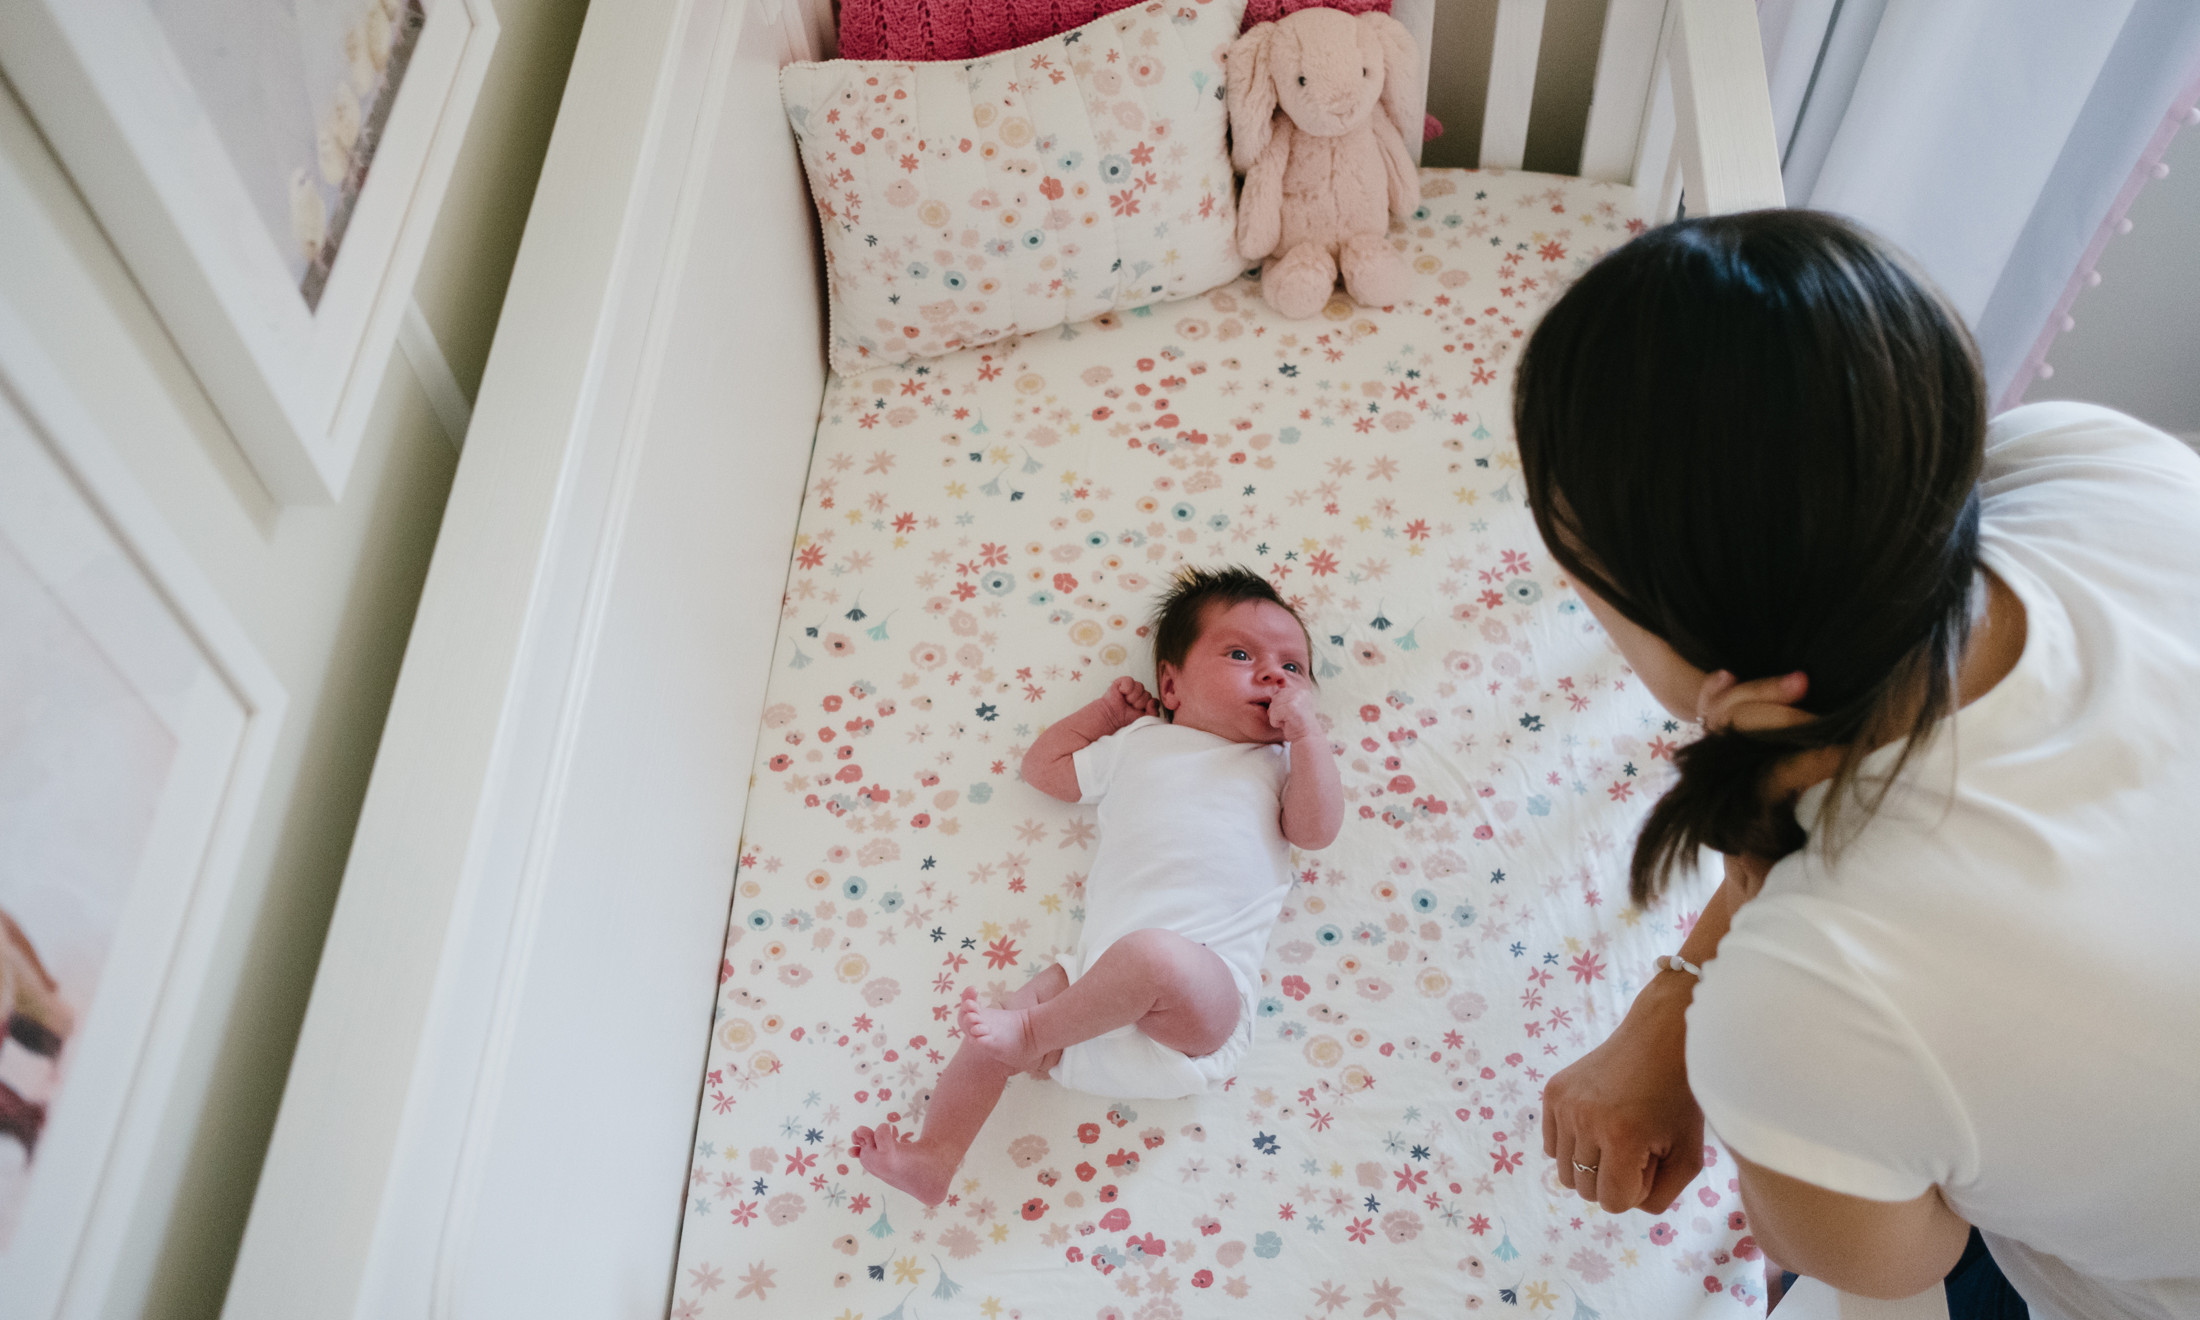 Mother looking at newborn baby girl in crib. Photo from Ottawa newborn photography session.